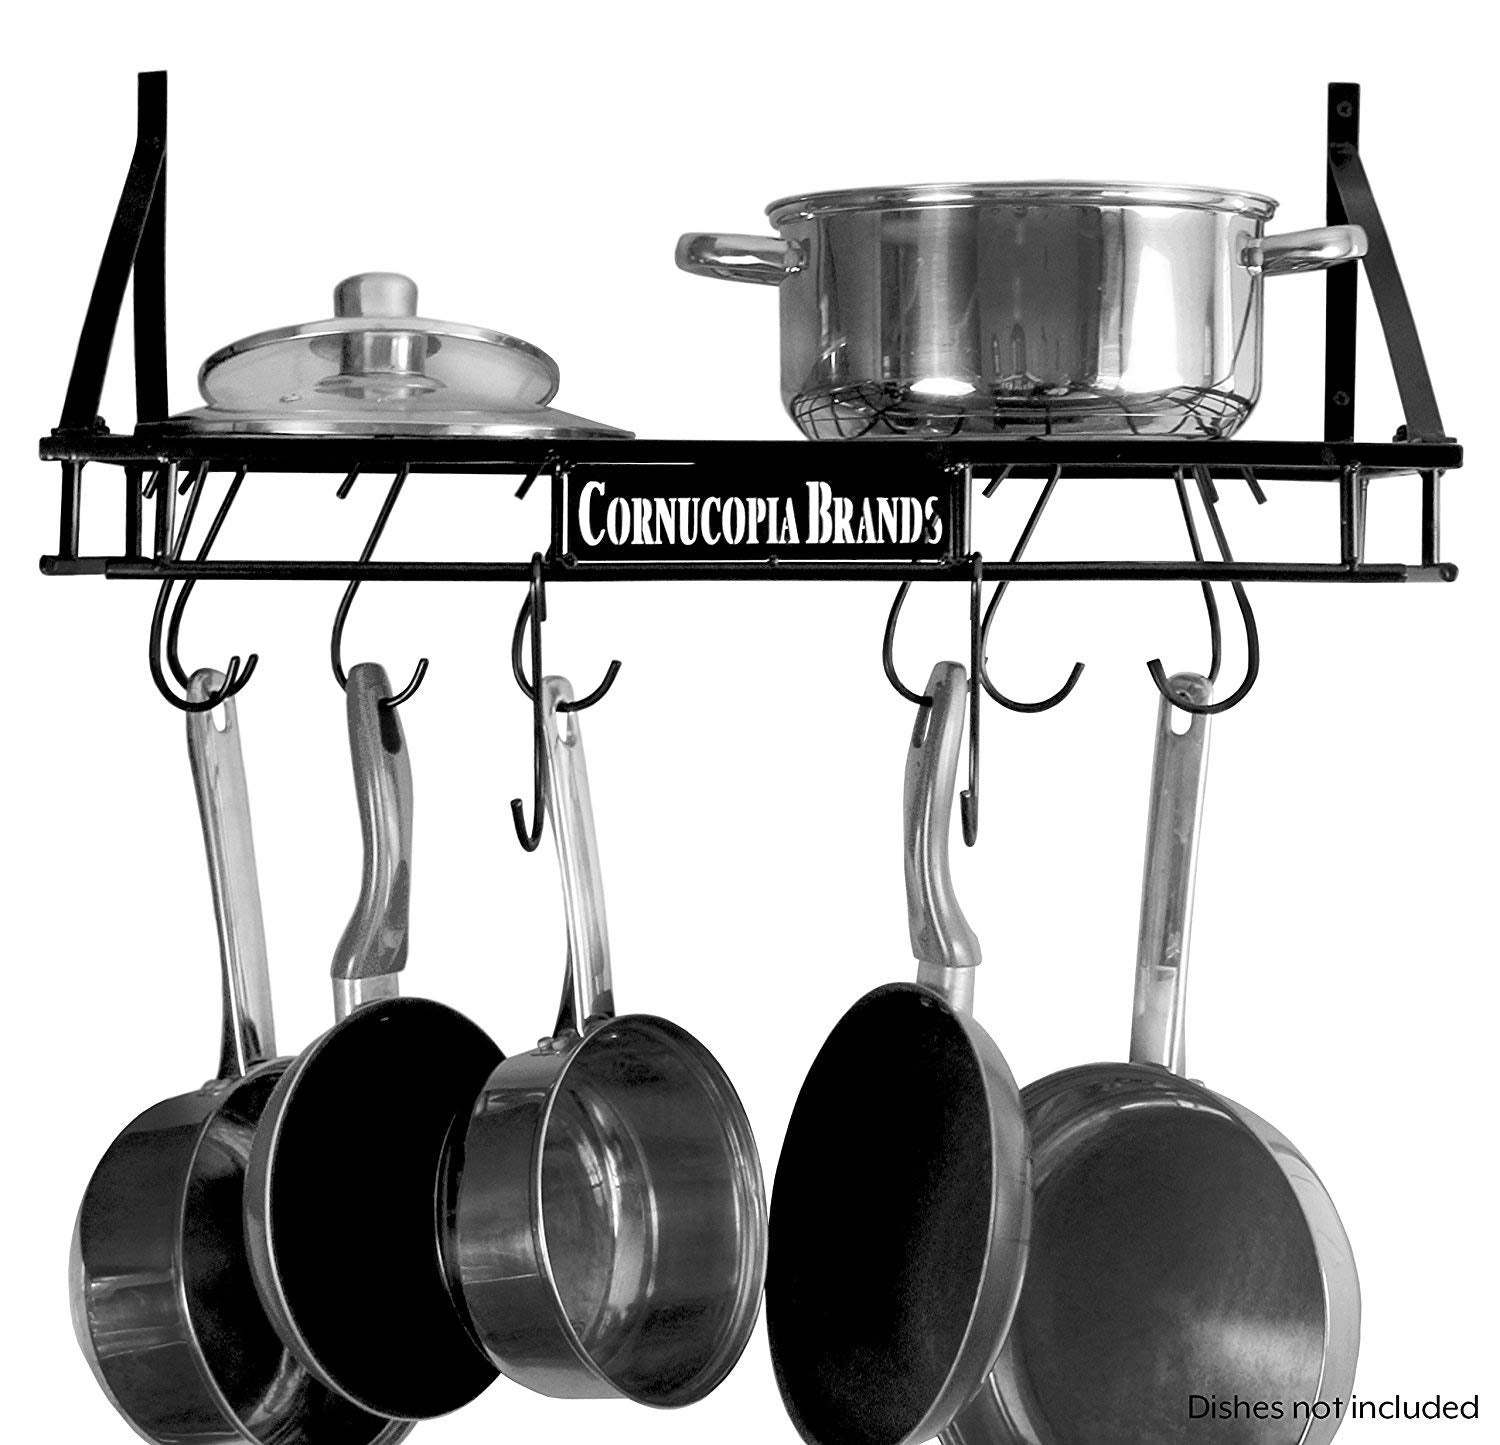 Wall-Mounted Pot Hanging Rack, 24 by 10 Inches, All-Black Decorative Kitchen Shelf w/ 10 S-Hooks